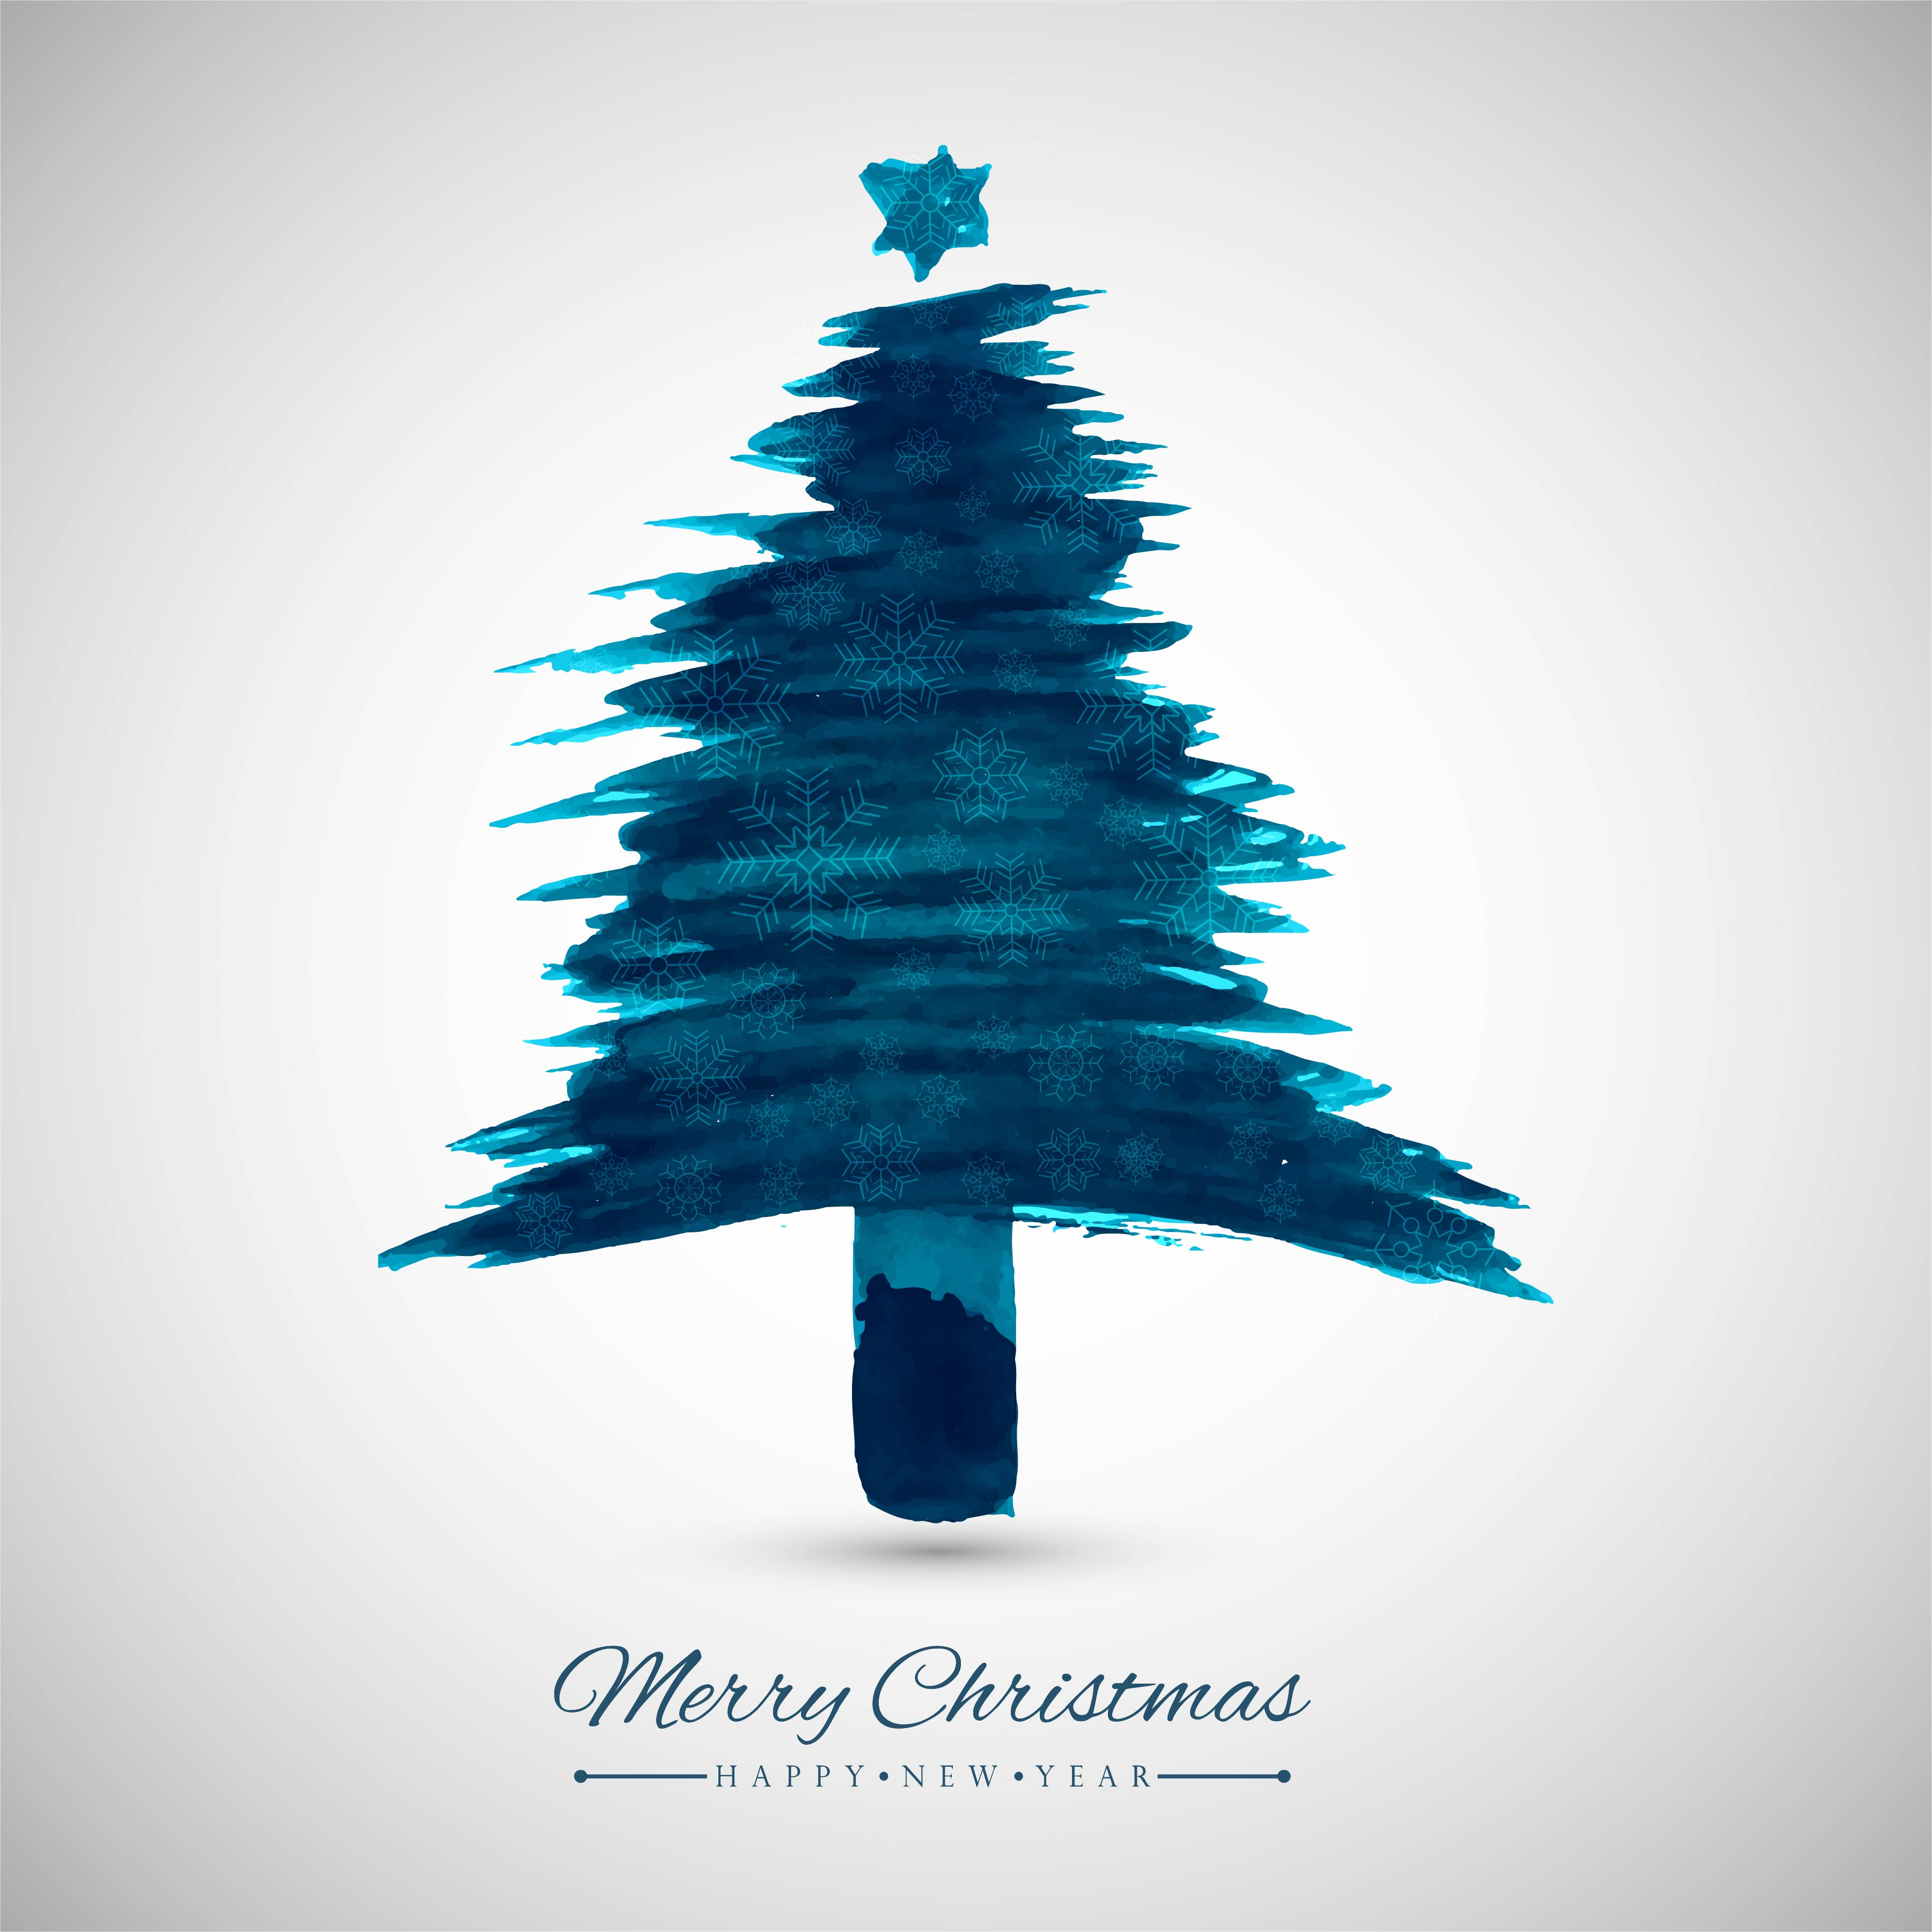 modern christmas free vector art 25901 free downloads - Modern Christmas